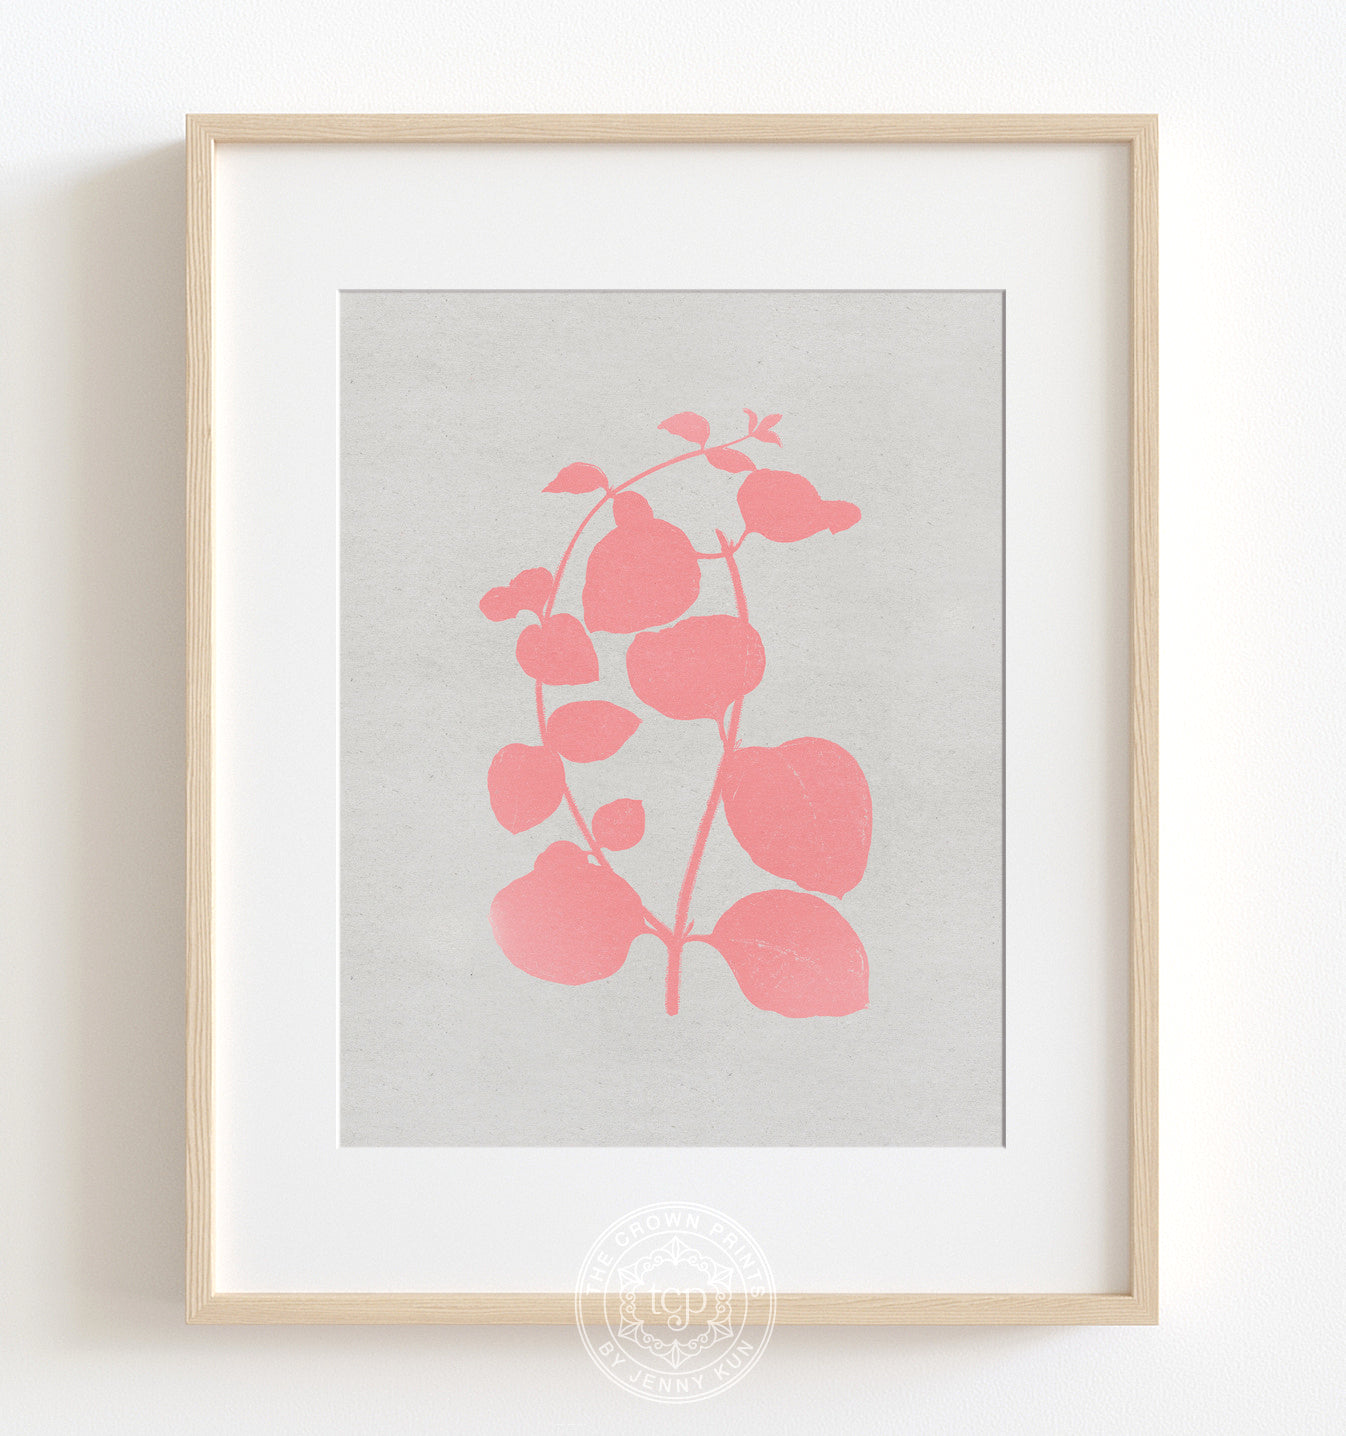 Botanical Silhouette No. 2 - Pink Printable Art